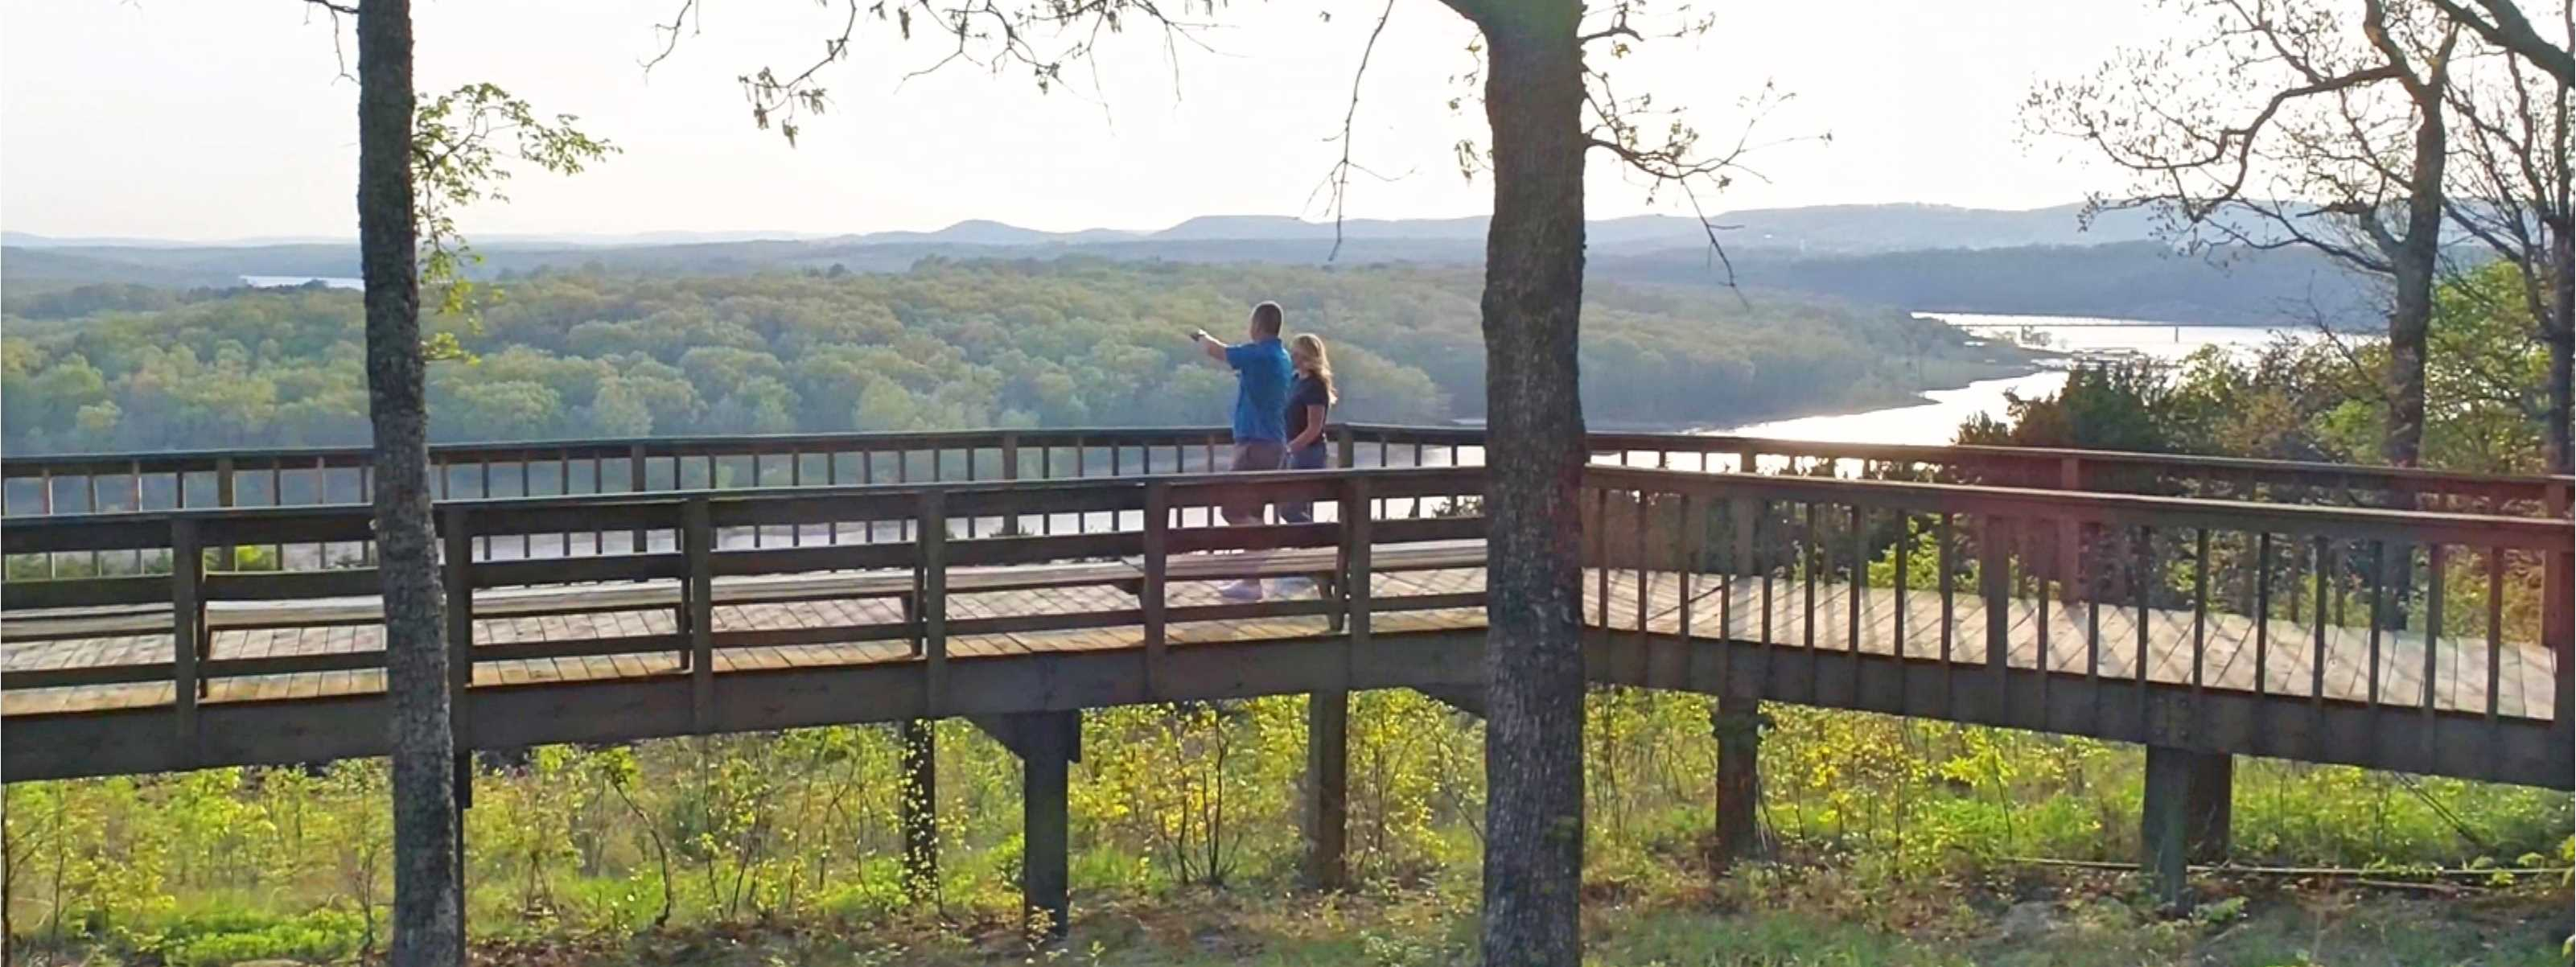 Lakeview Property For Sale At Table Rock Lake